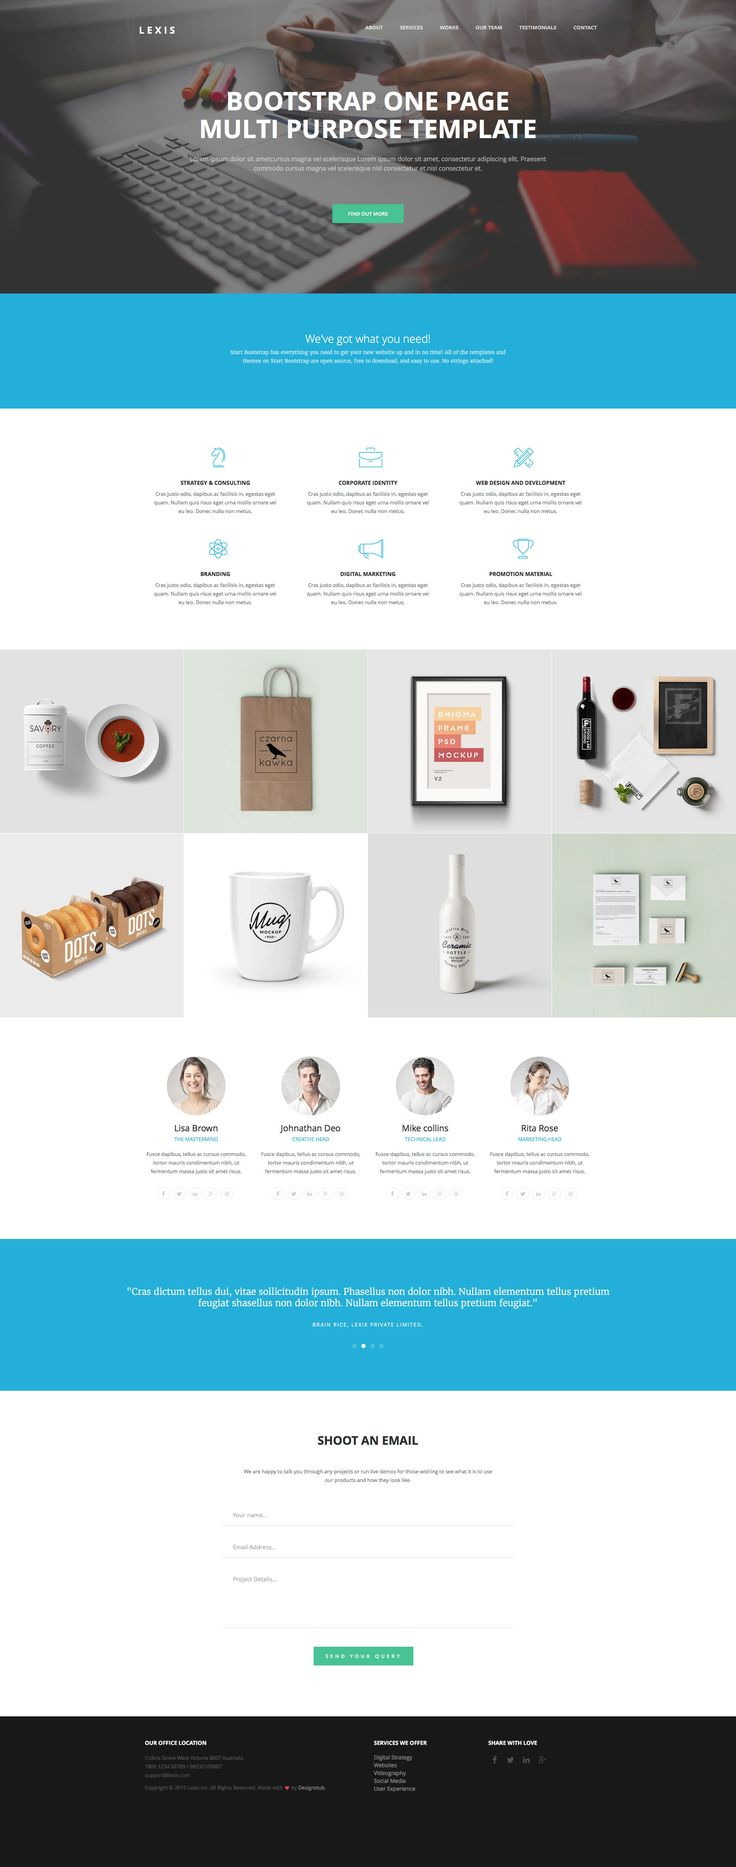 23 best bootstrap templates images on Pinterest | Free html ...